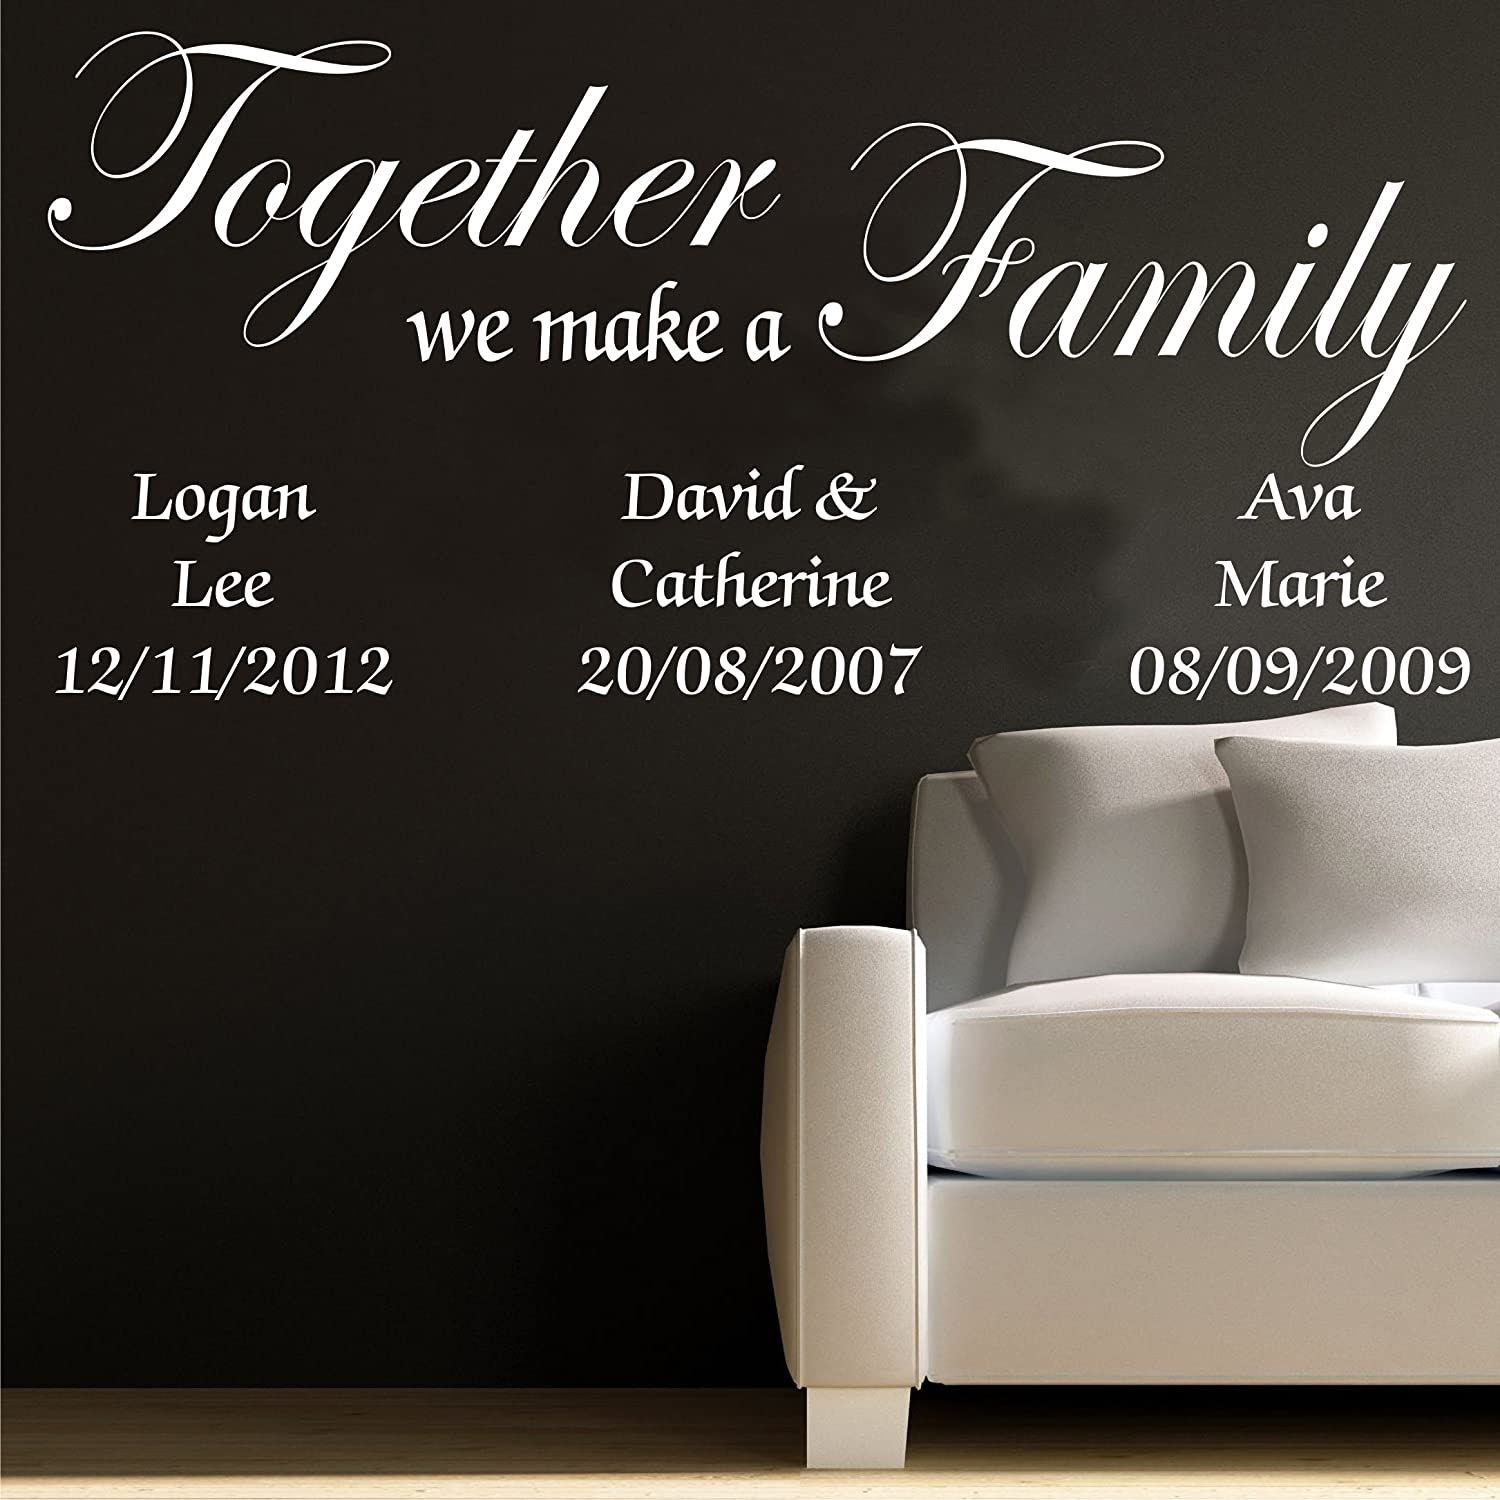 TOGETHER WE MAKE A FAMILY PERSONALISED WALL ART STICKER QUOTE ~ IDEAL FOR  HALLWAY, LOUNGE, STUDY, OFFICE, DINING ROOM, BEDROOM  Part 85